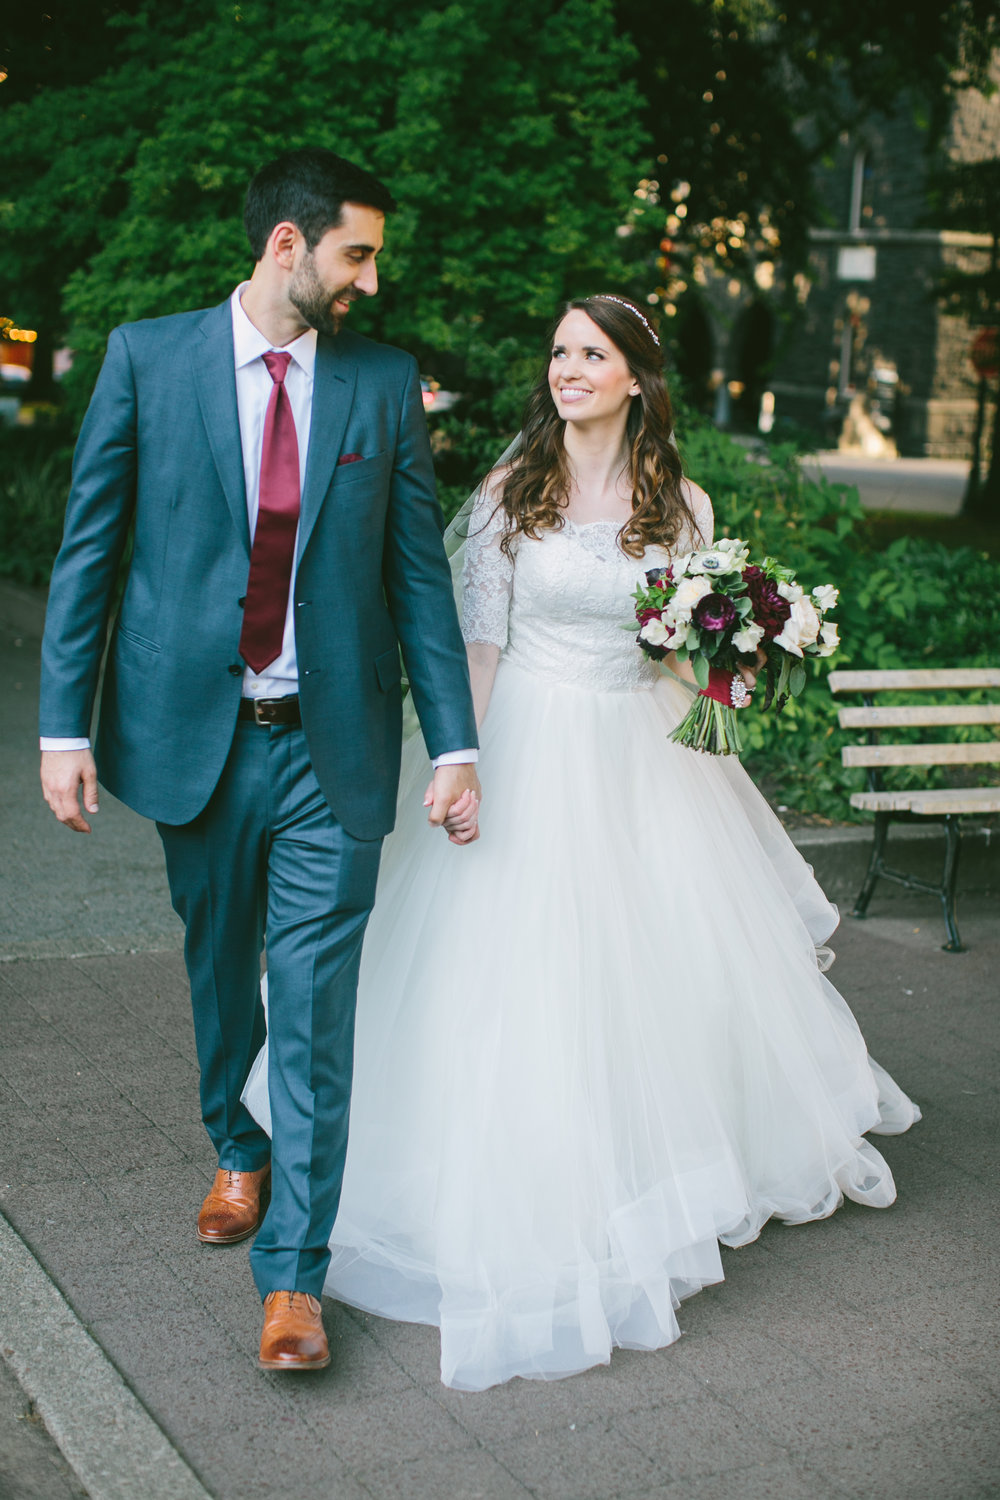 Bridalbliss.com | Portland Wedding | Oregon Event Planning and Design |  Yasmin K Photography